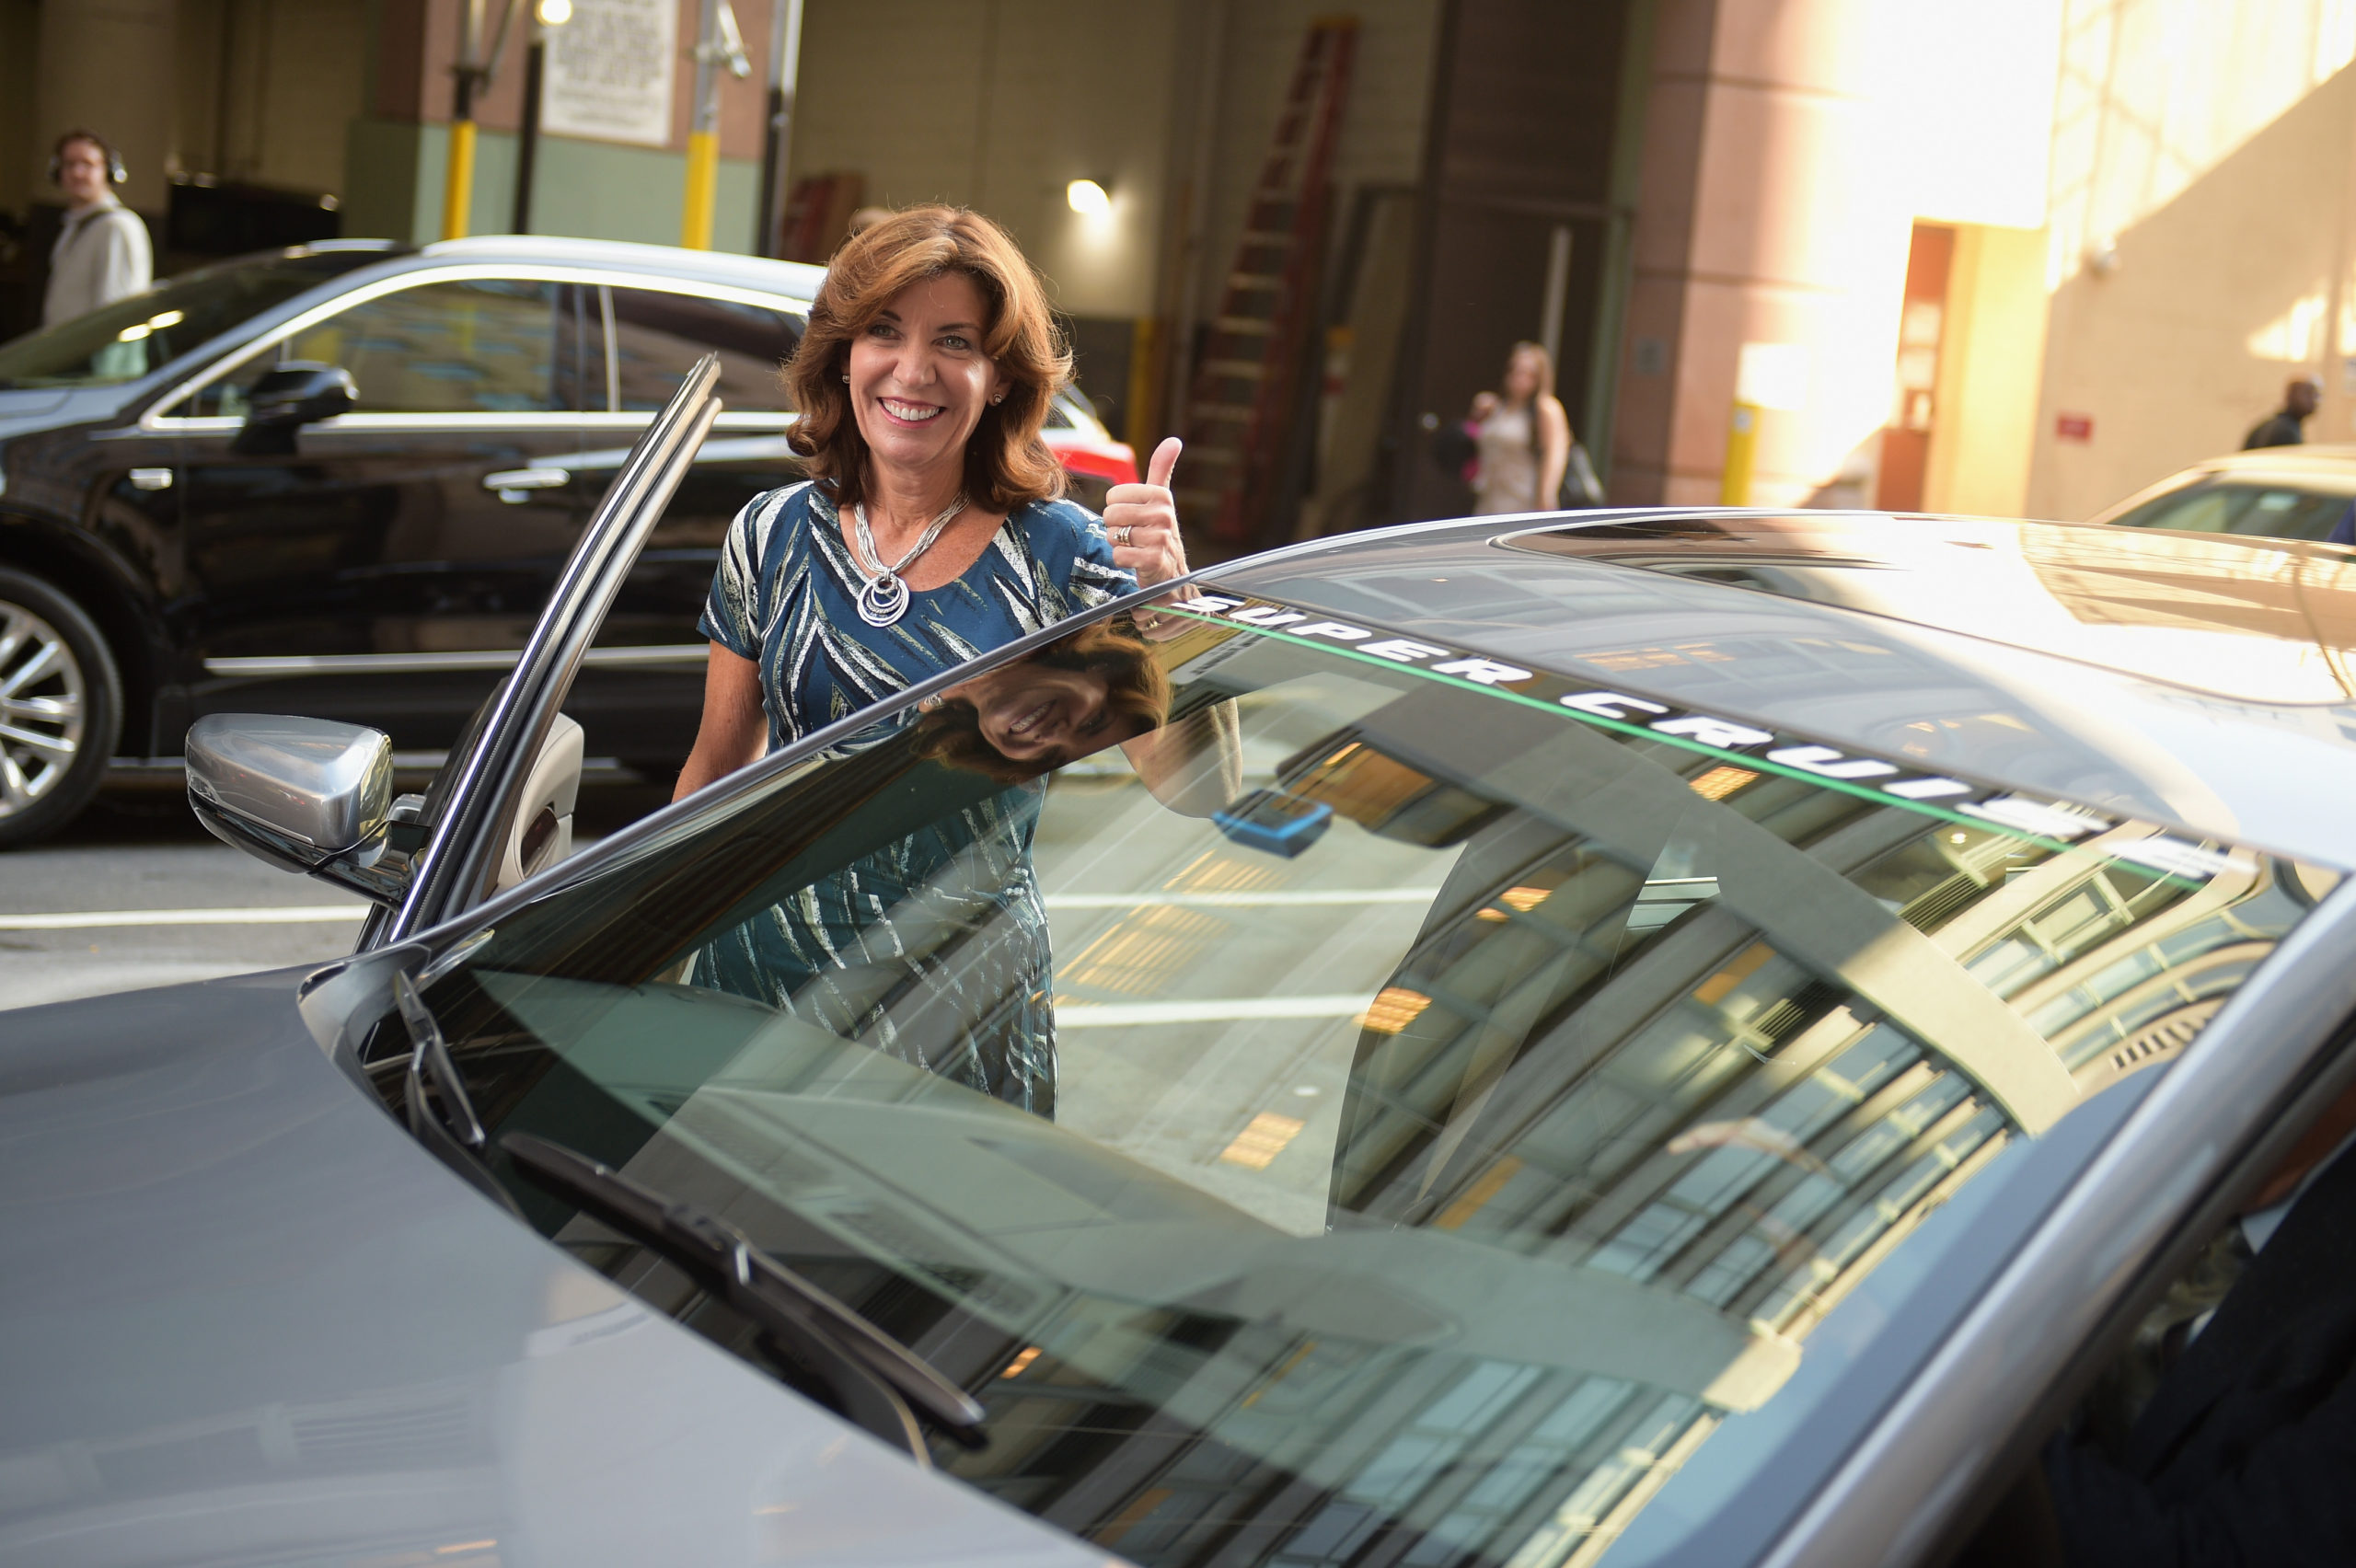 Lieutenant Governor Kathy Hochul of New York and Cadillac kick off first-ever hands-free drive on freeways from coast to coast with Cadillac Super Cruise at Cadillac House, NYC. (Jason Kempin/Getty Images for Cadillac)